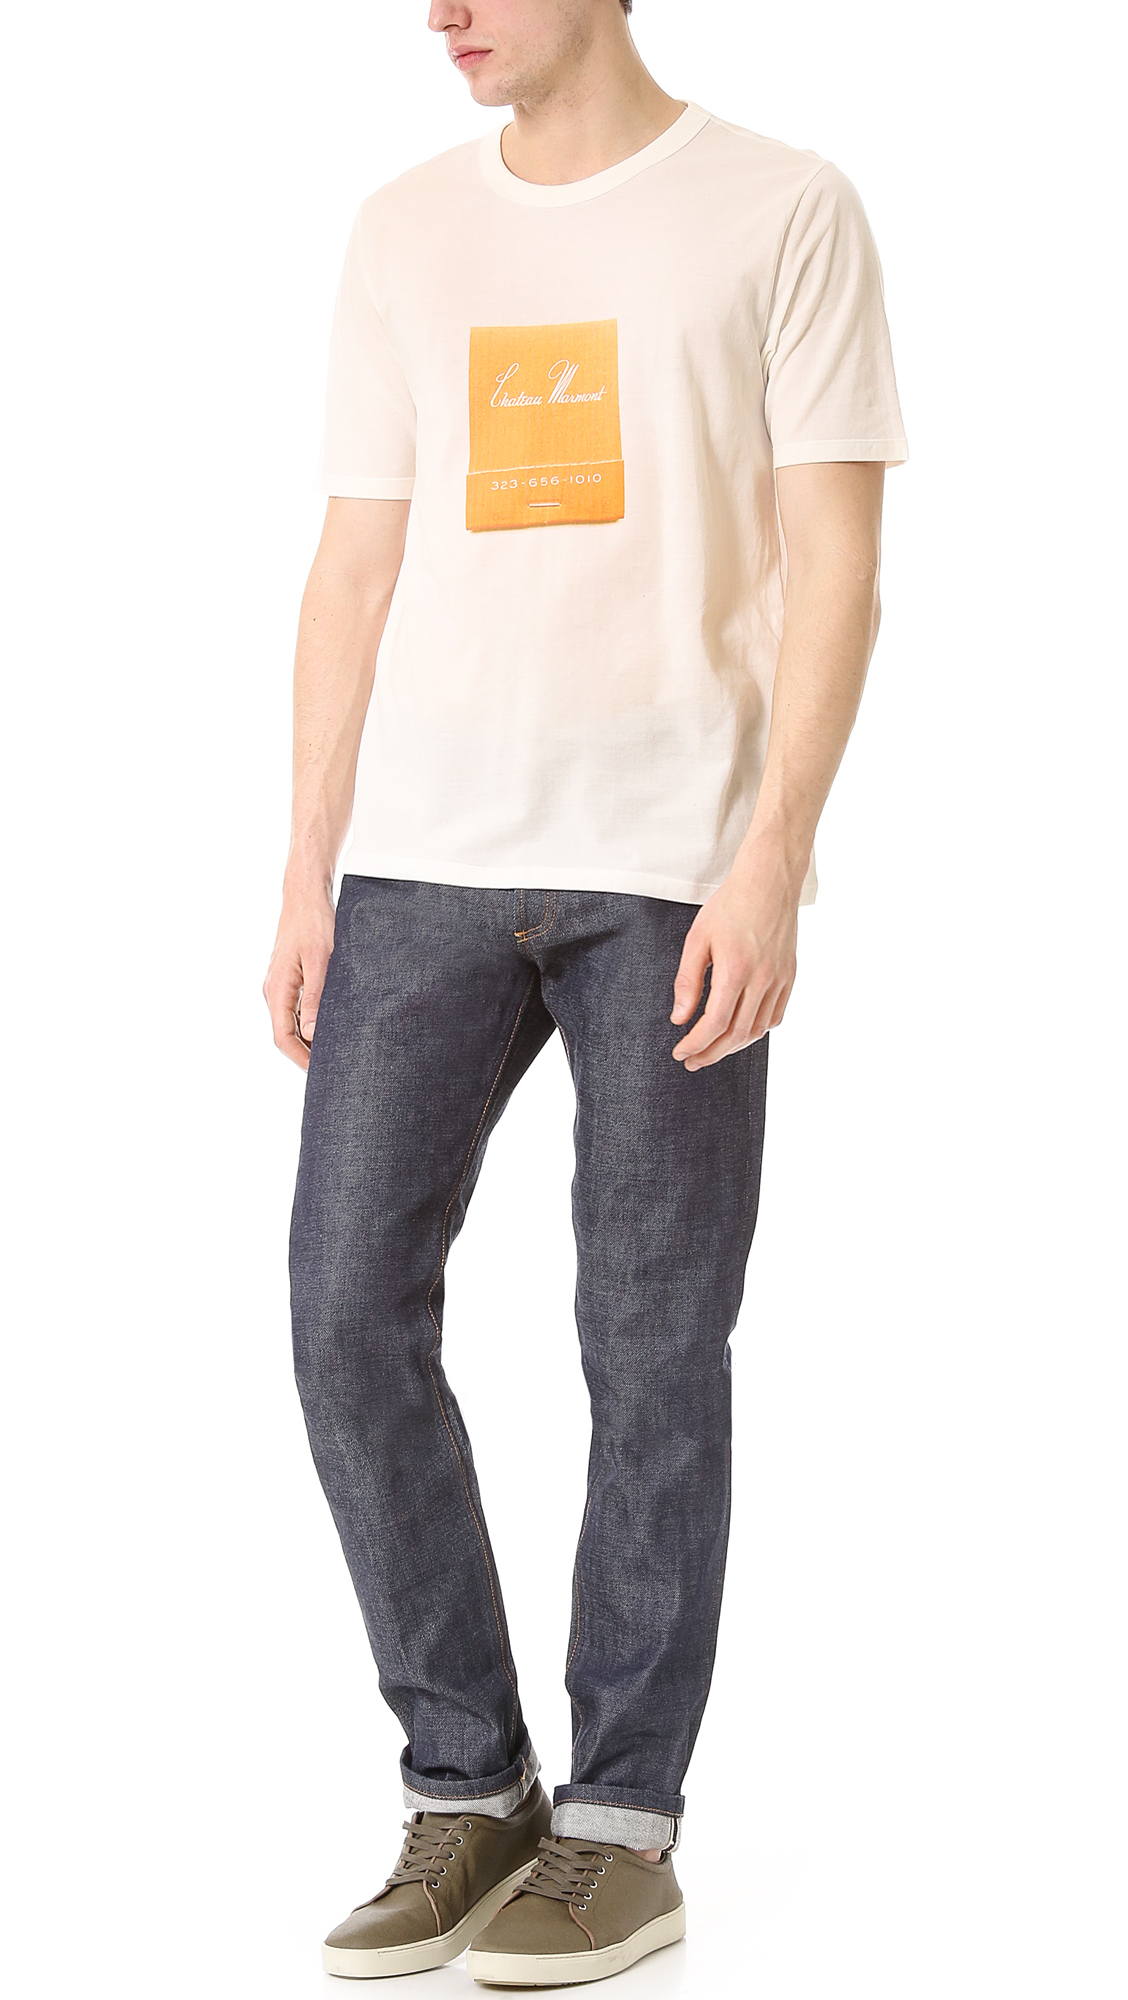 29813d9688a Band of Outsiders Chateau Marmont Tee